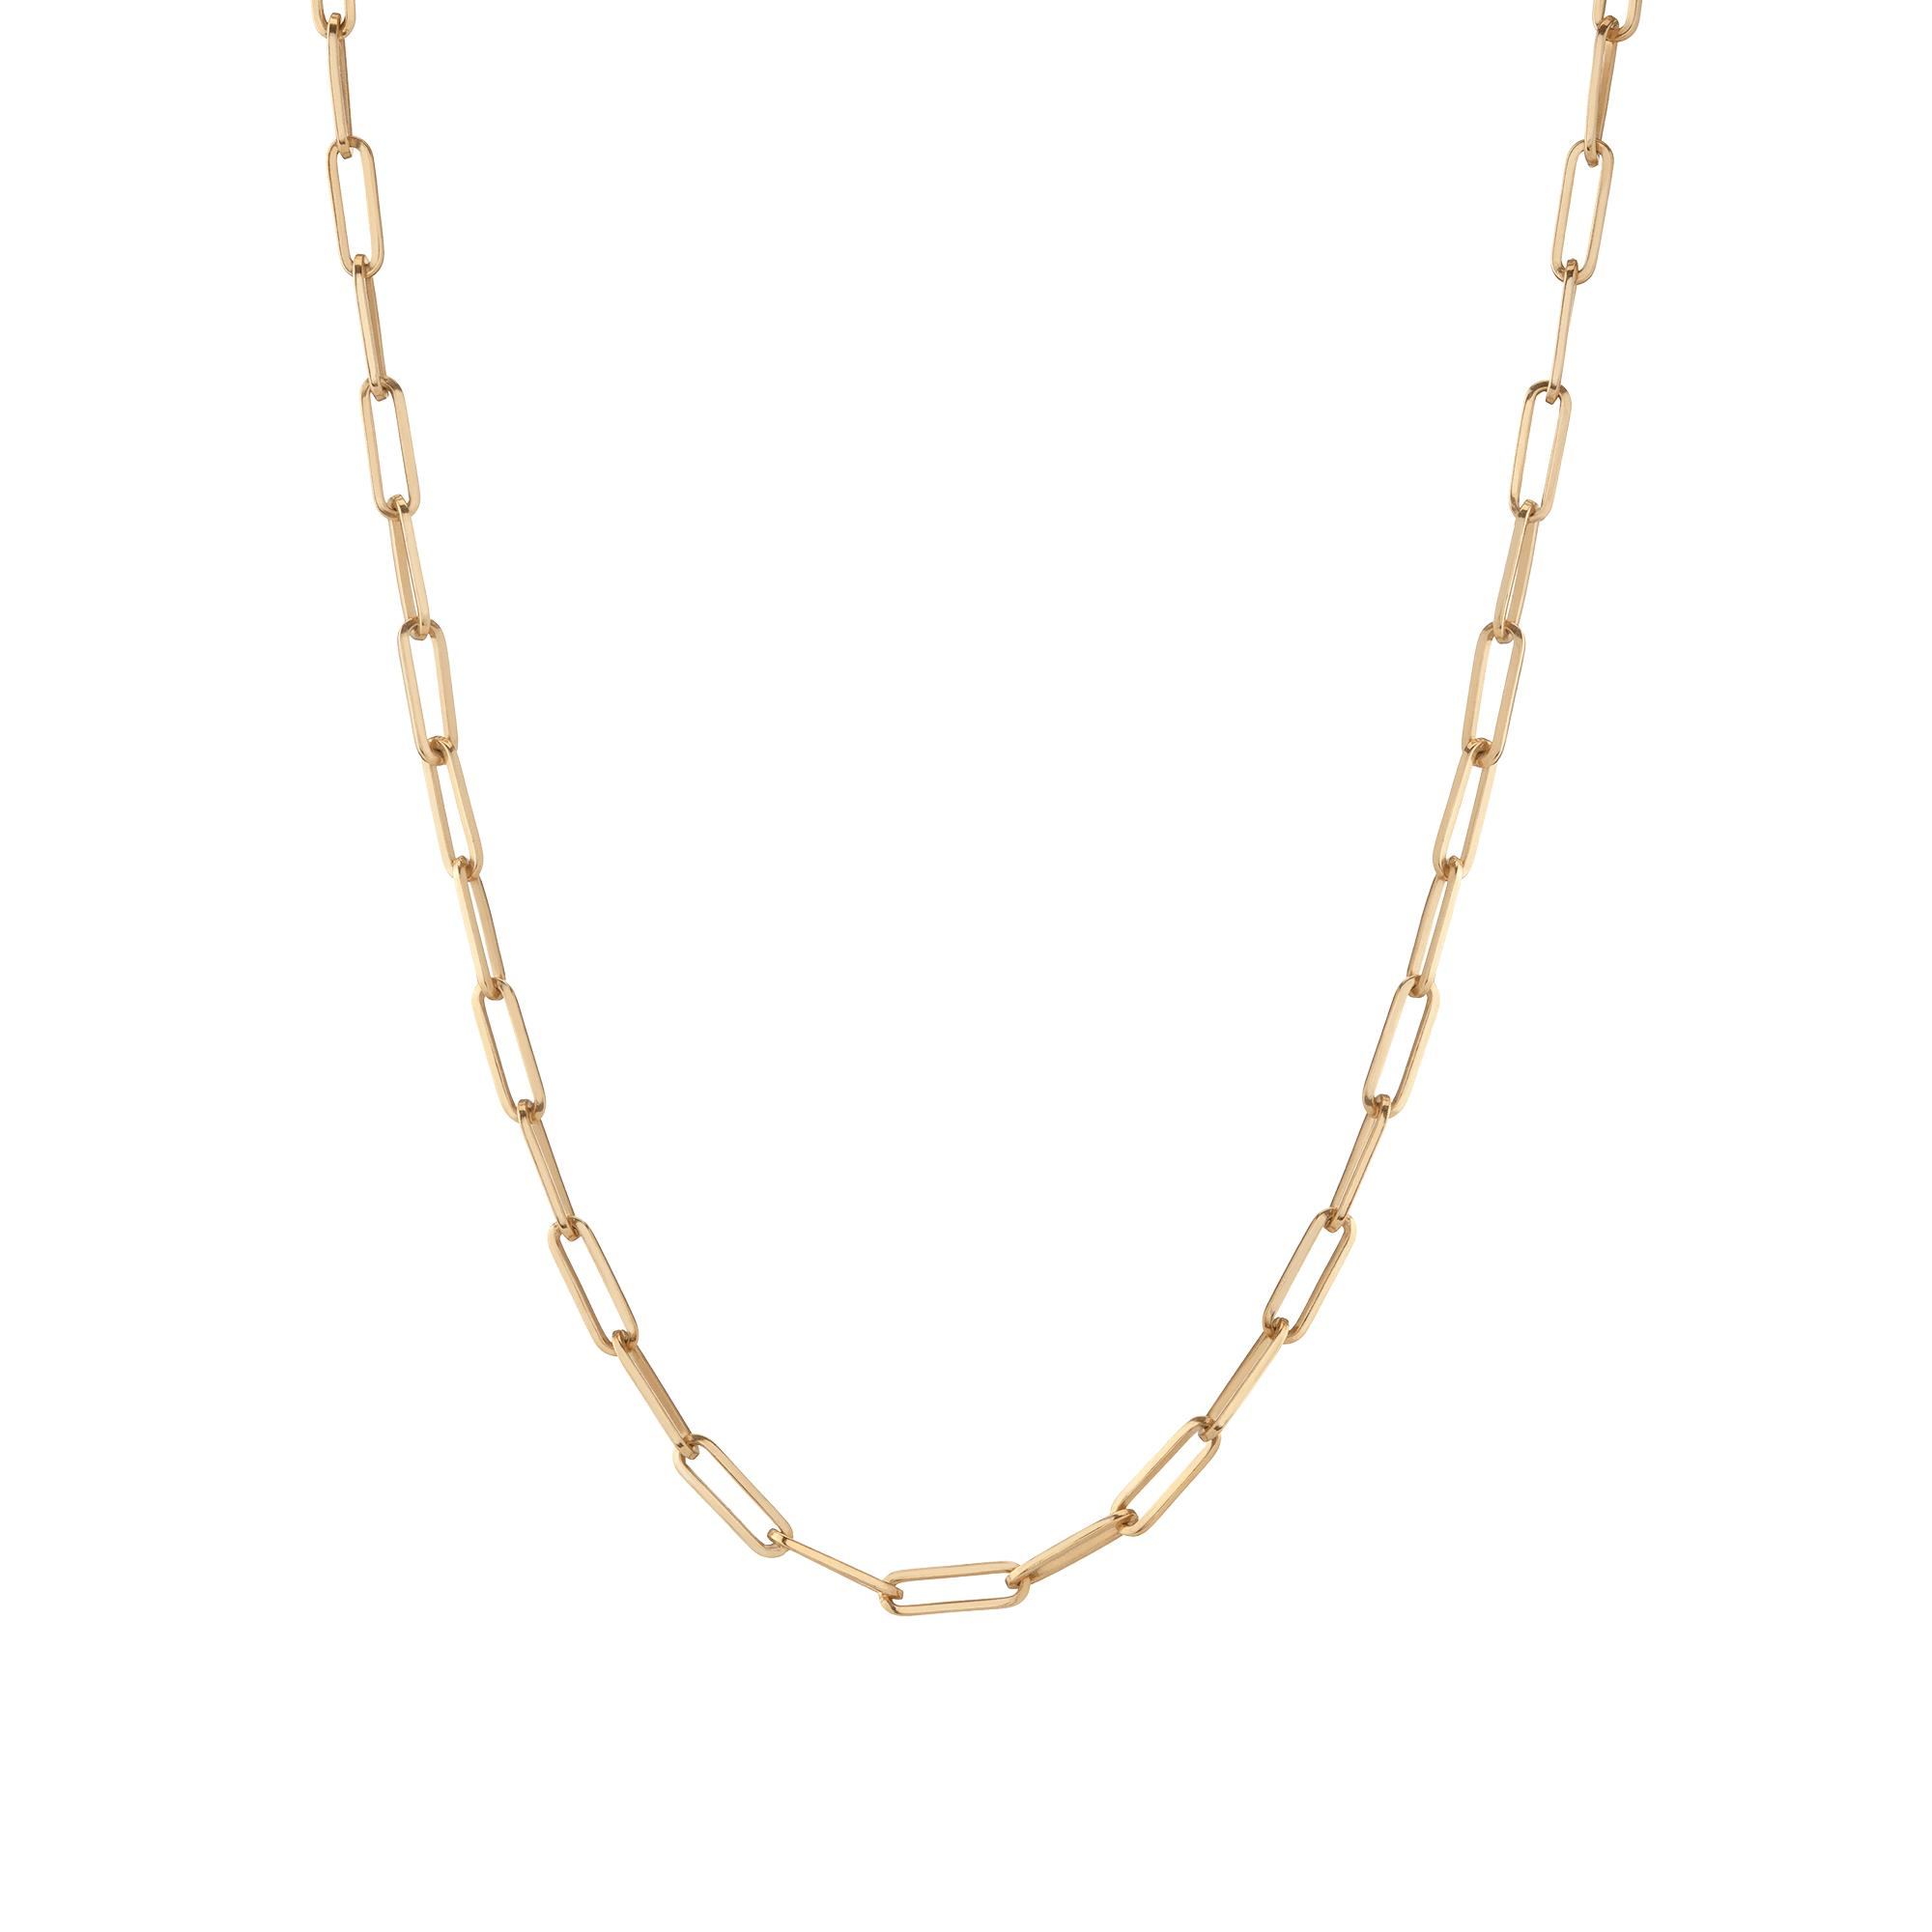 Large Chain Necklace in Yellow, Rose or White Gold